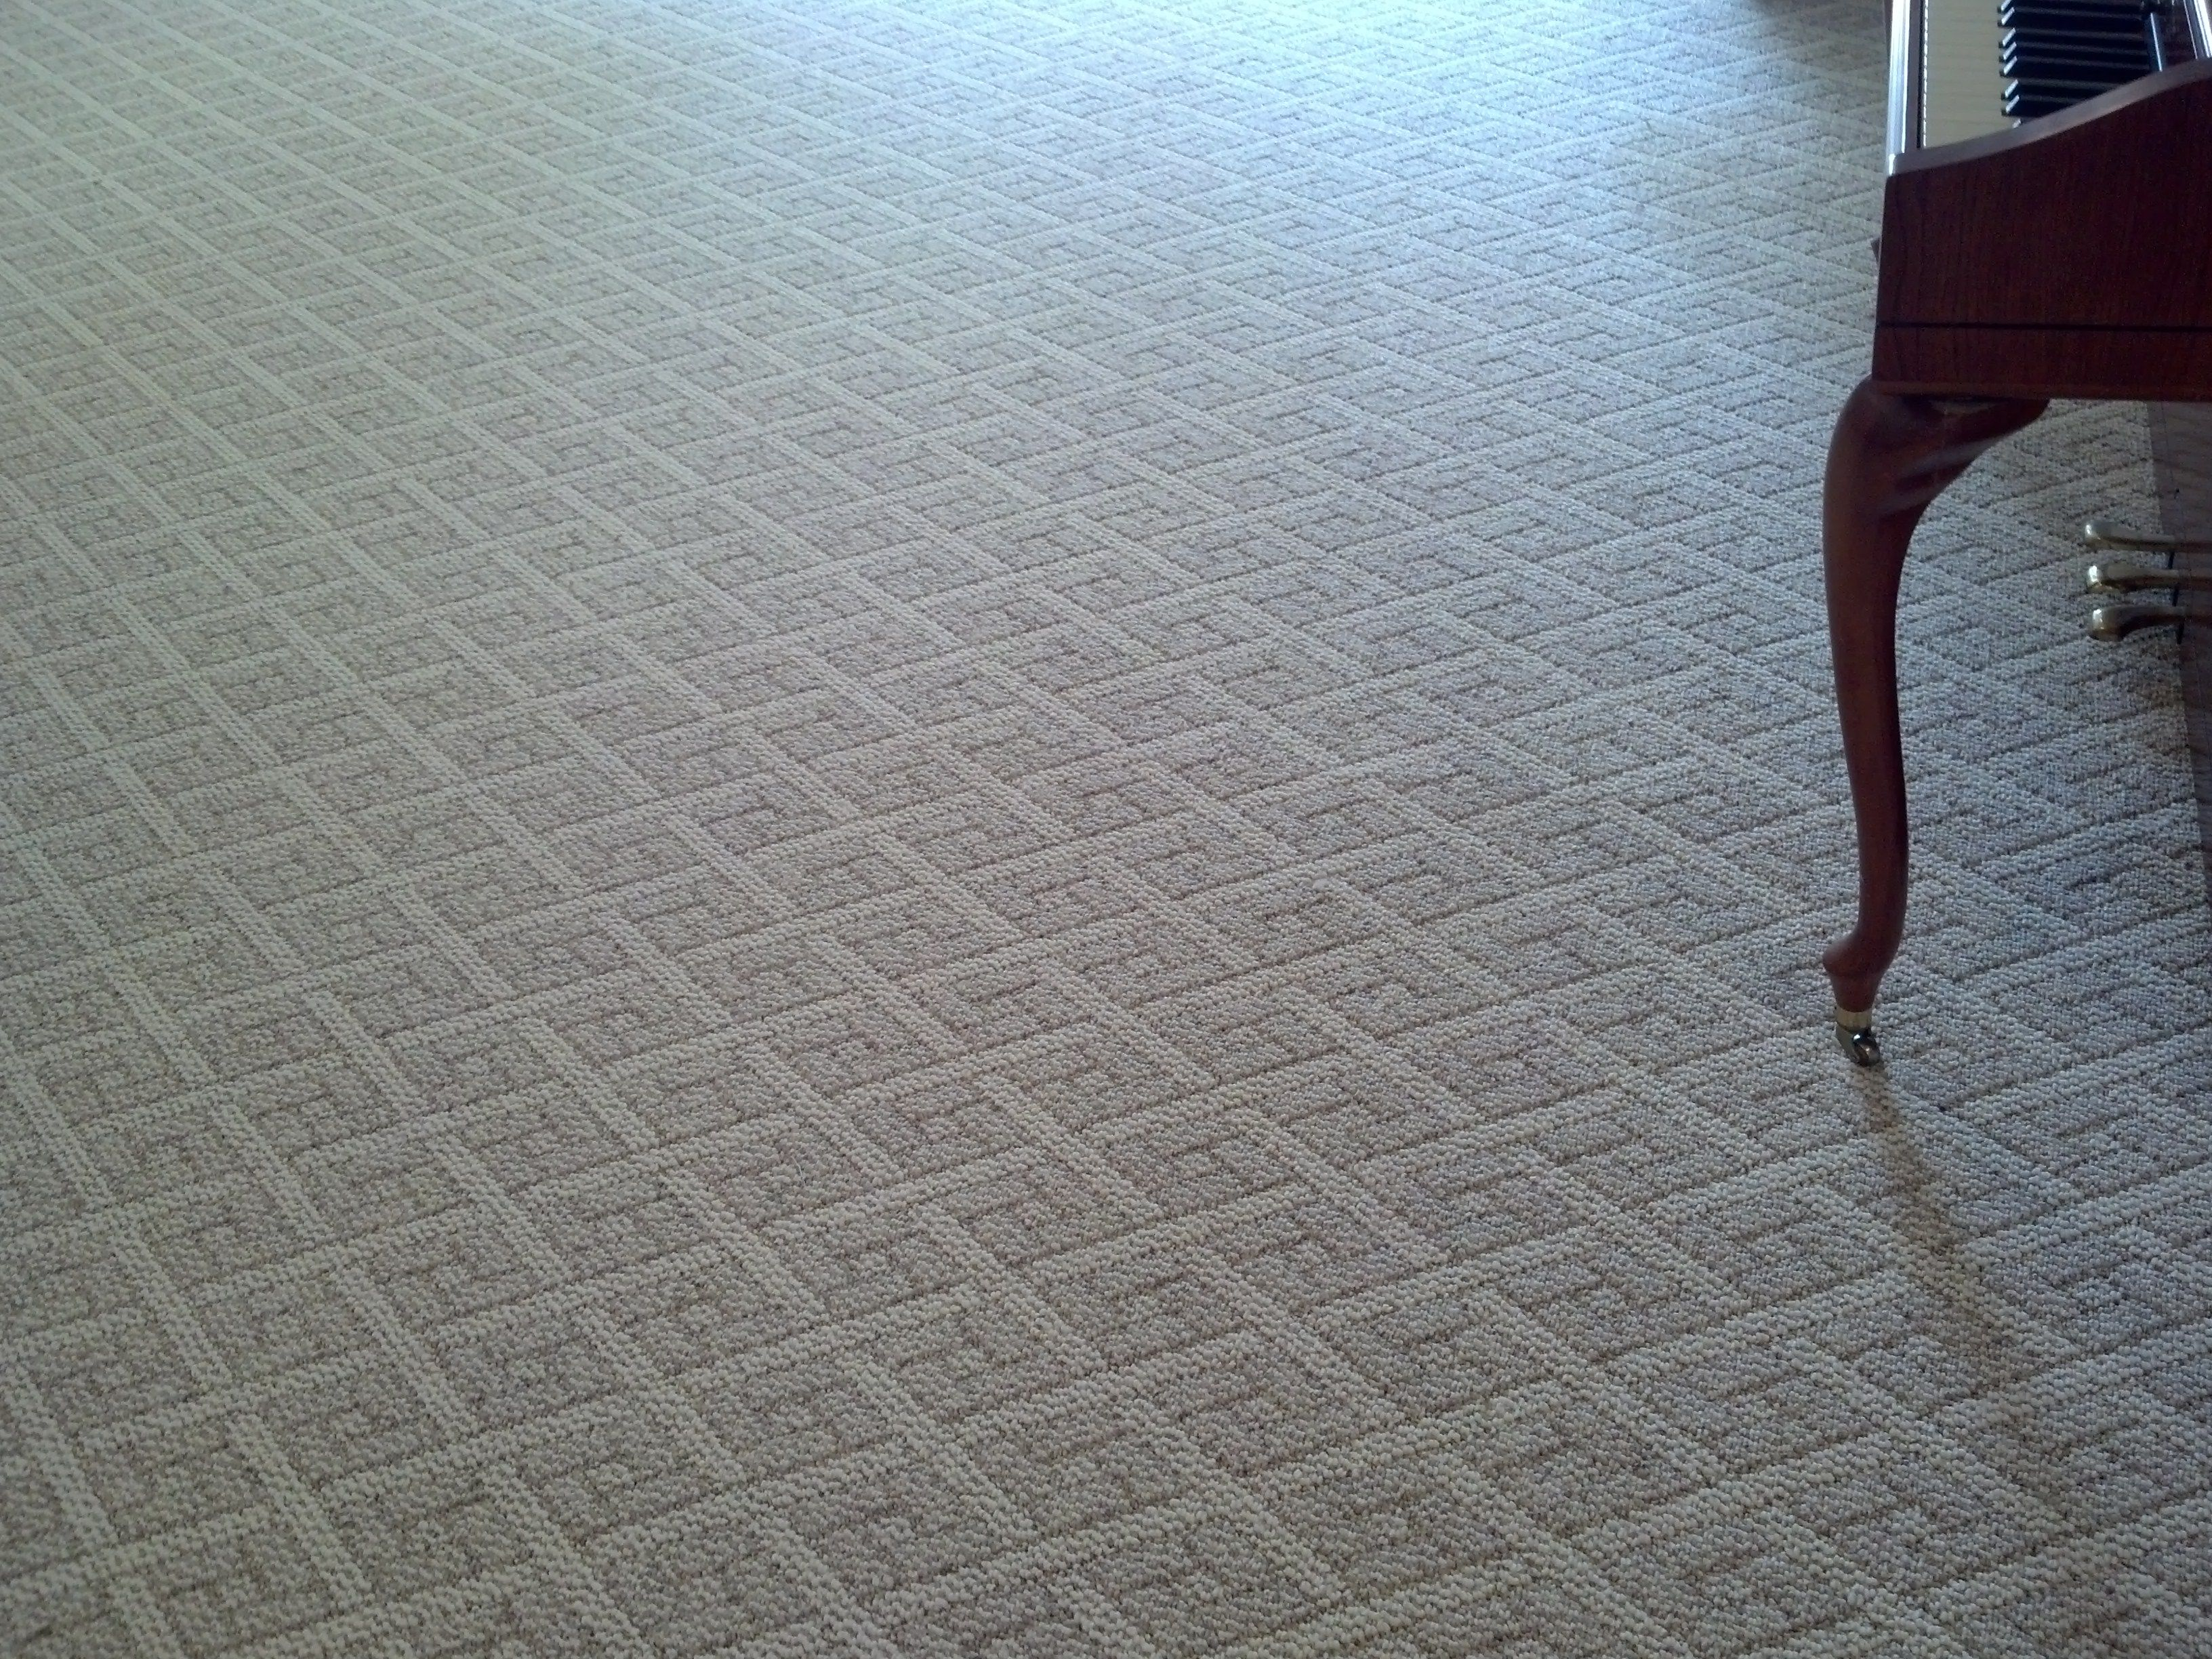 Berber carpet cincinnati oh south hampton by coronet carpet berber carpet cincinnati oh south hampton by coronet carpet installed in family room baanklon Choice Image